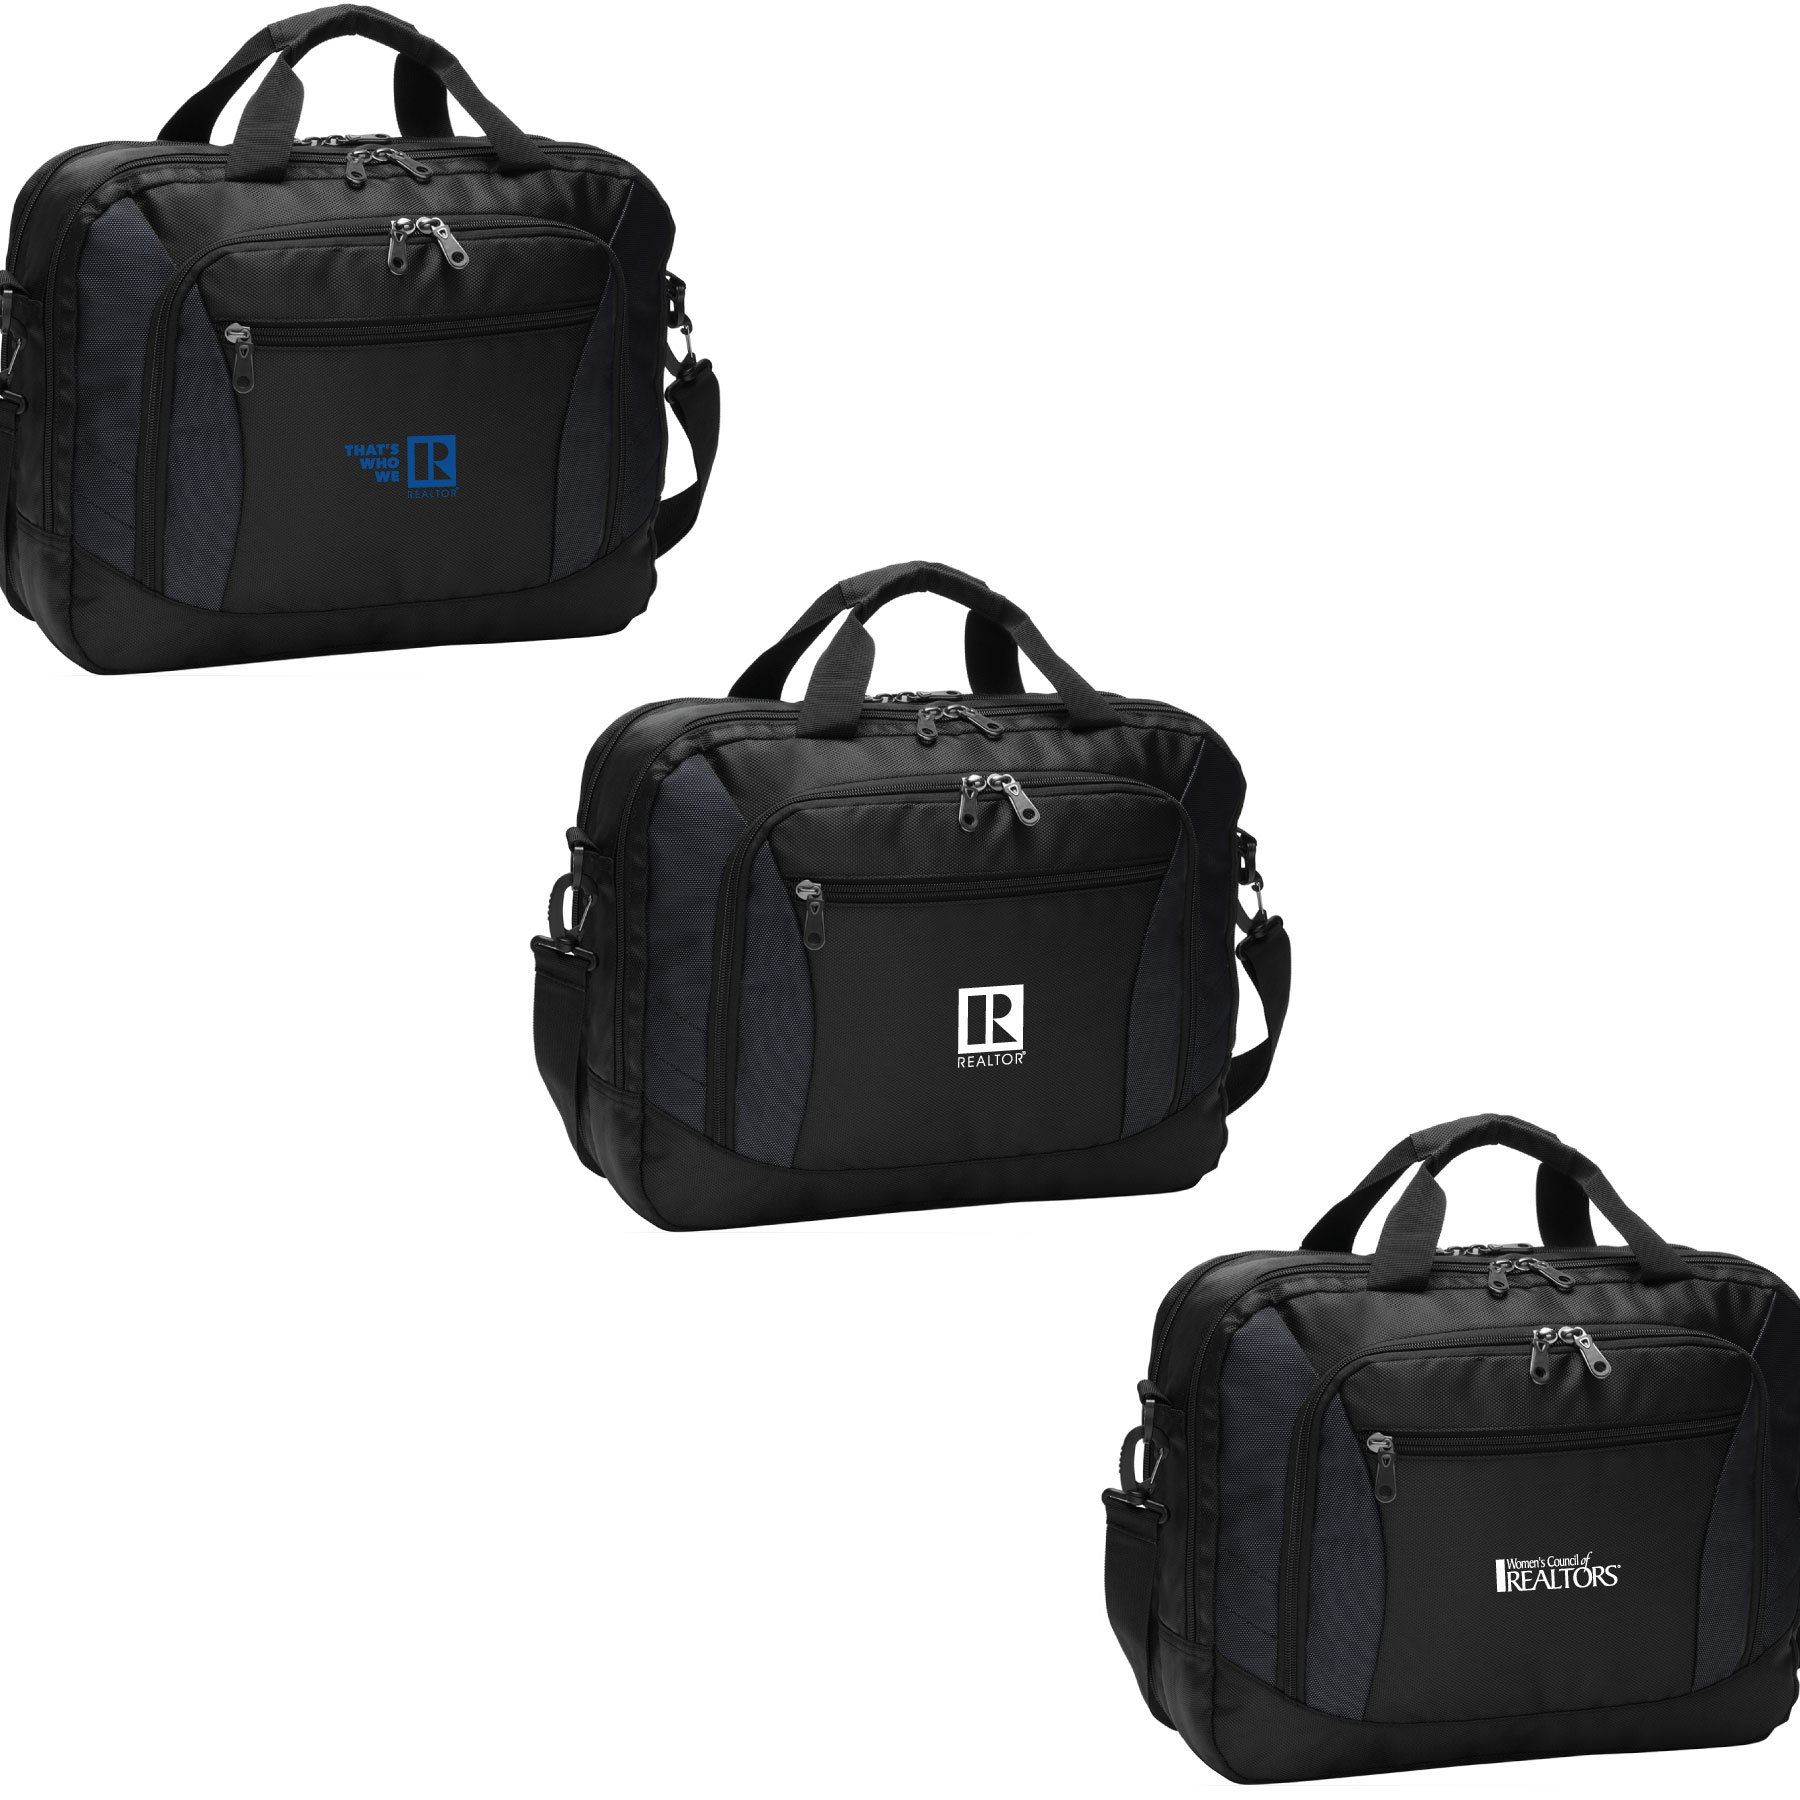 Laptop Briefcase Messenger Laptop, Tablet, iPad, Messenger, Bag, Tote, Briefcase, GRI, MRP, SFR, RSPS, CCIM, WCR, Party, University, CIPS, YPN, Green, RCE, SRES, BPOR, PSA, e-Pro, Epro